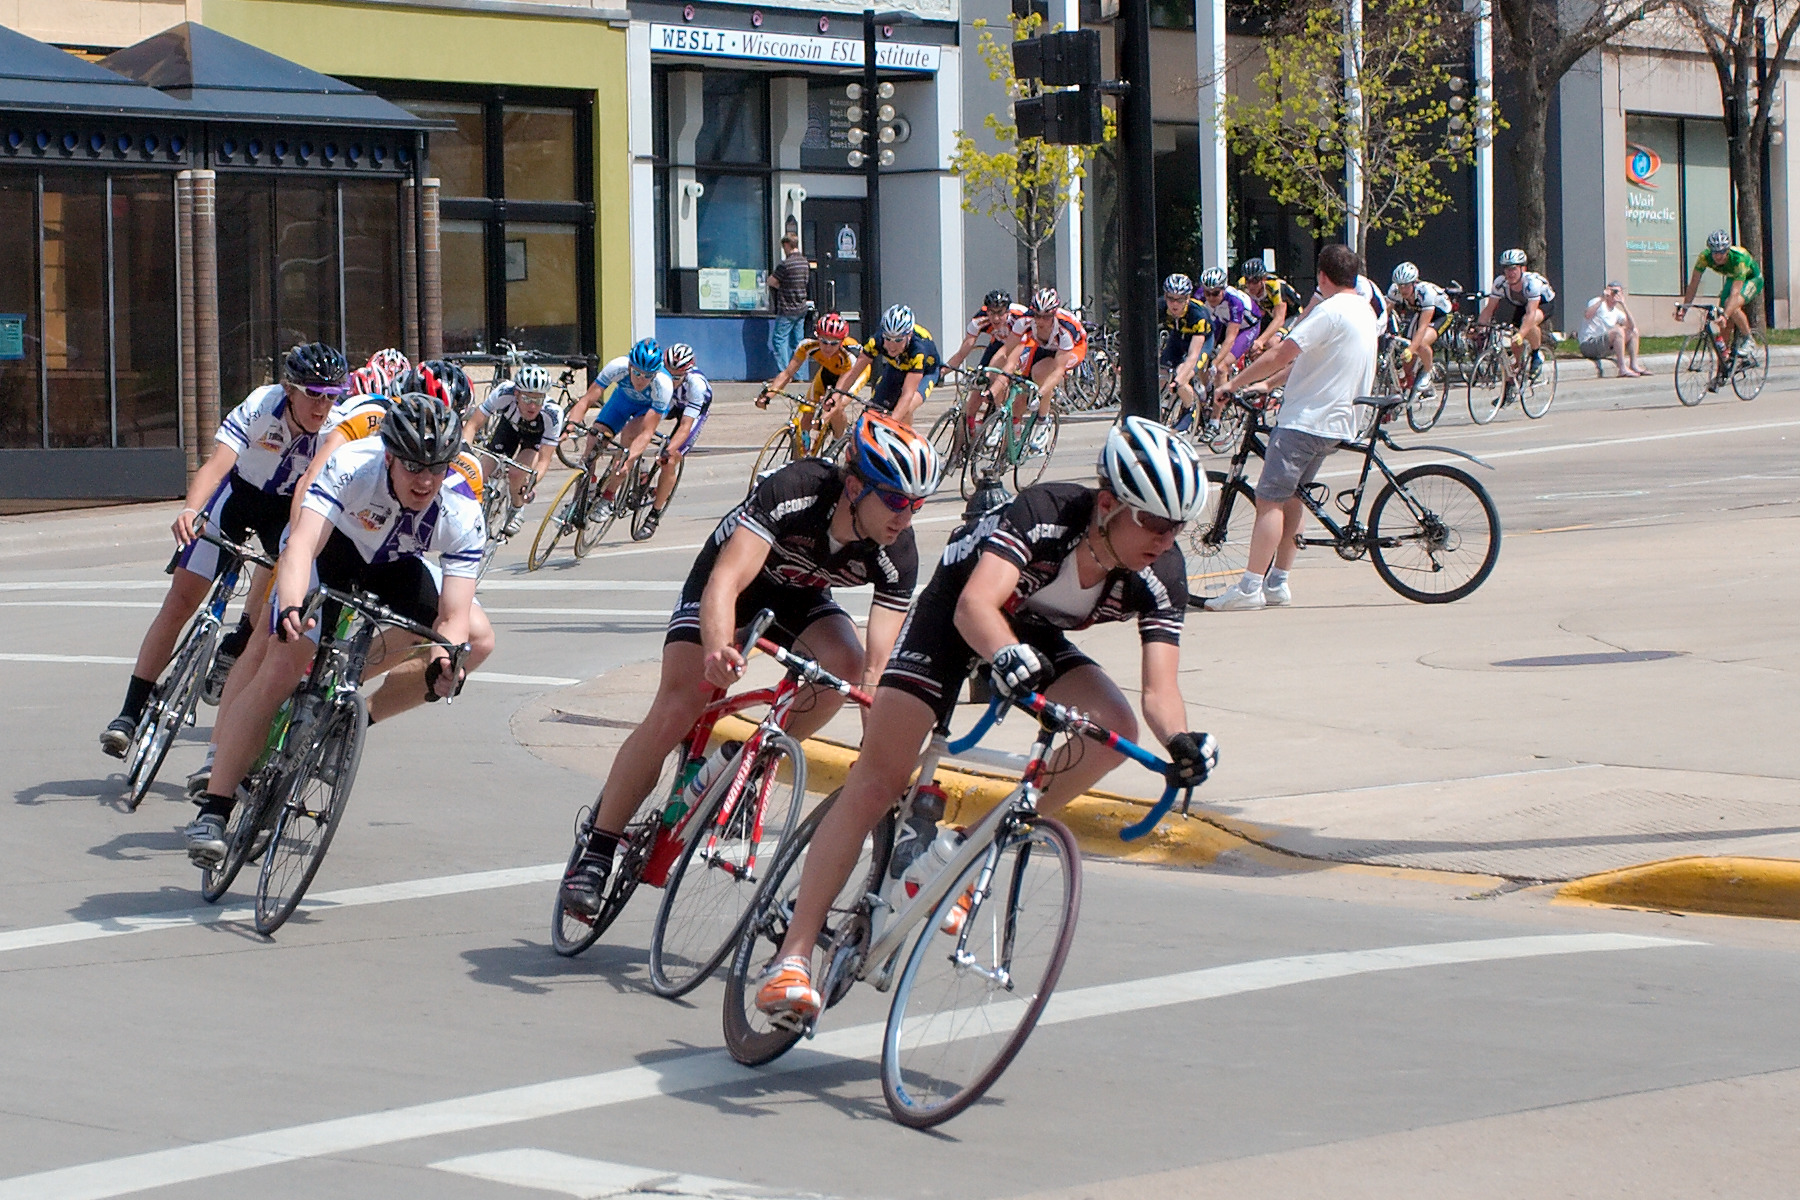 File Cycling Madison Wisconsin 1096.jpg - Wikimedia Commons df645a0cf